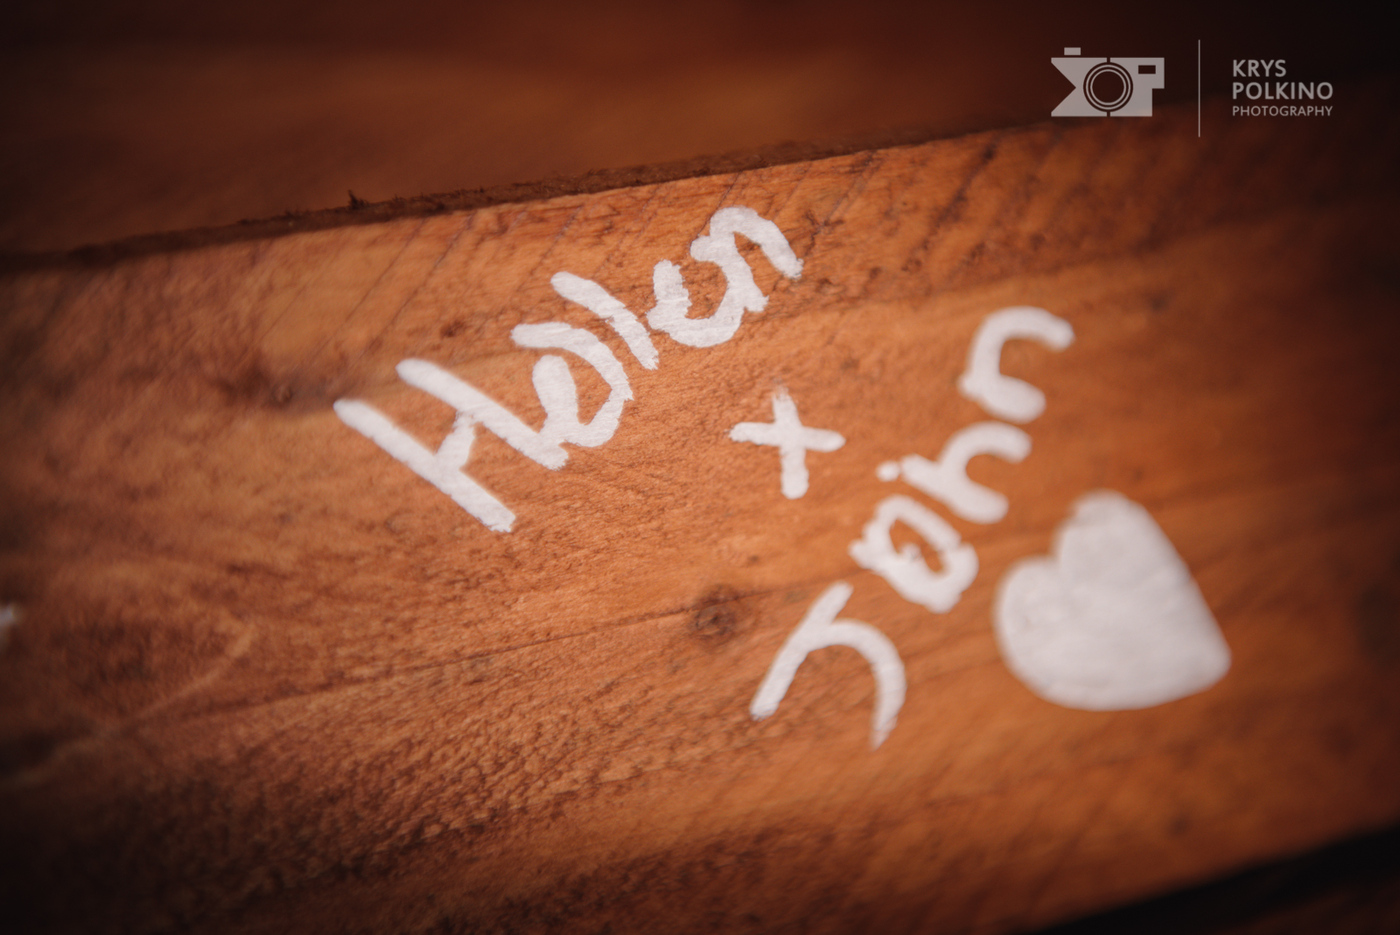 Helen & John | Wedding Photography at Social Club